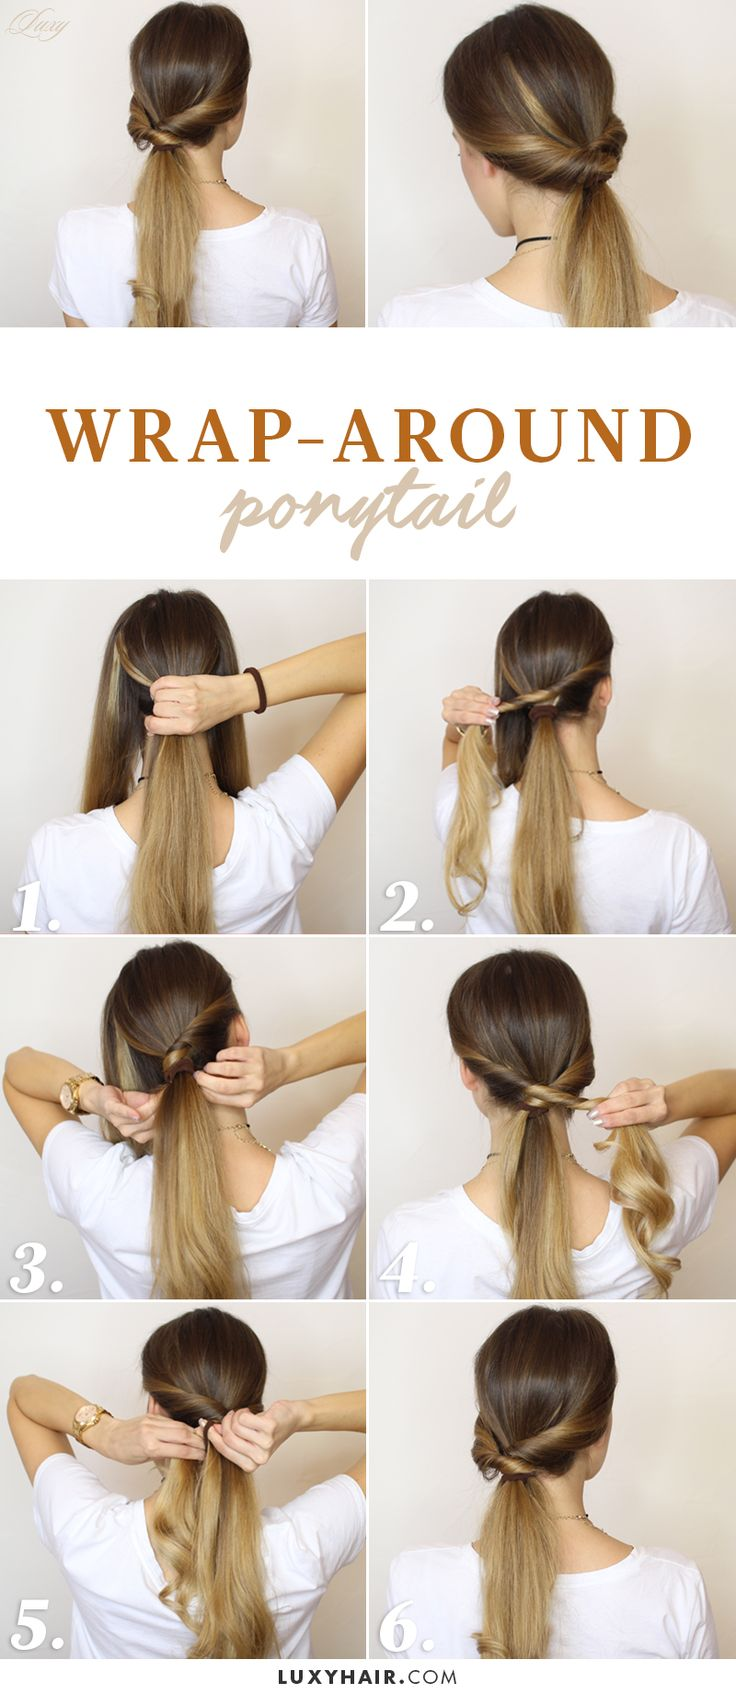 Hairstyle Tutorials 375 Best Hair Tutorials & How To Images On Pinterest